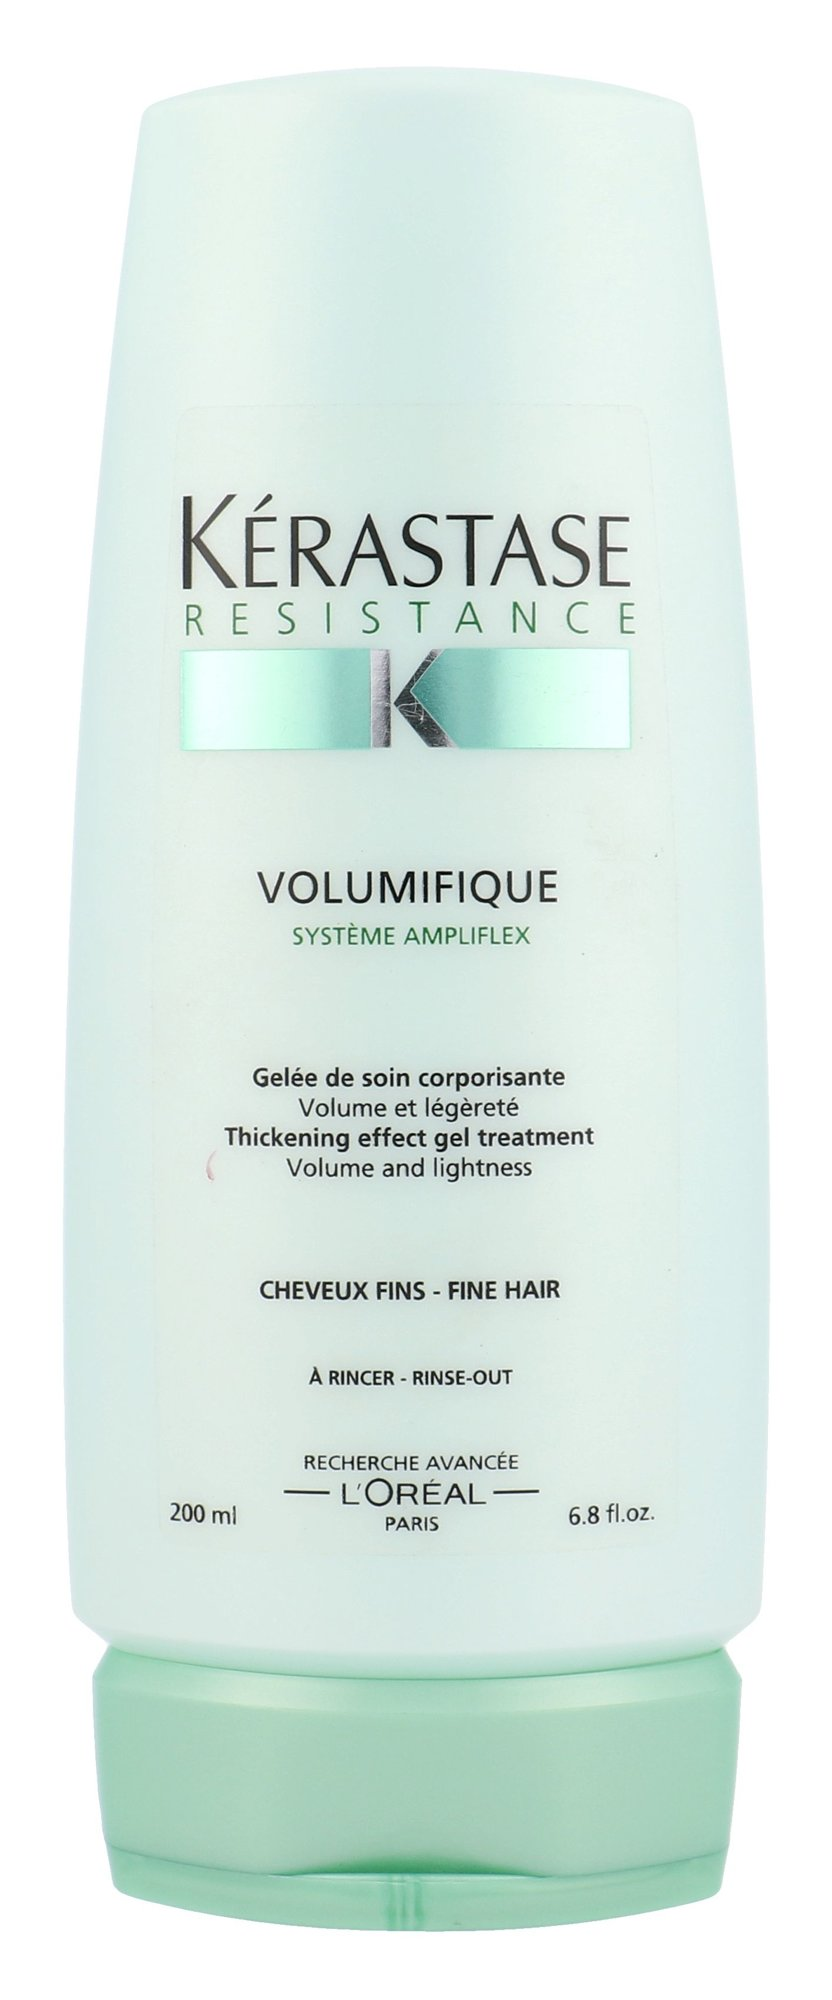 Kérastase Résistance Cosmetic 200ml  Volumifique